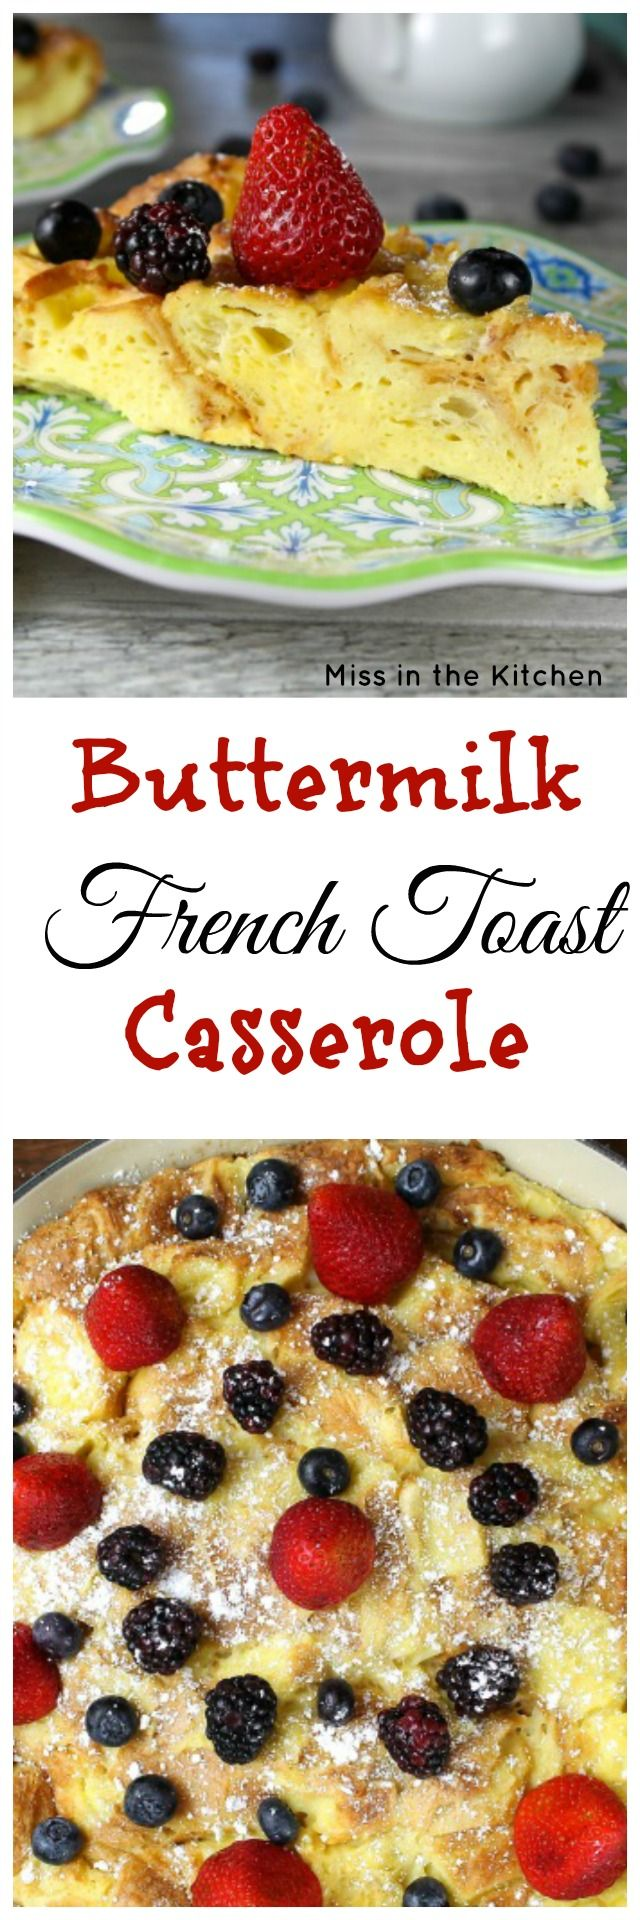 Buttermilk French Toast Casserole Recipe found at MissintheKitchen.com